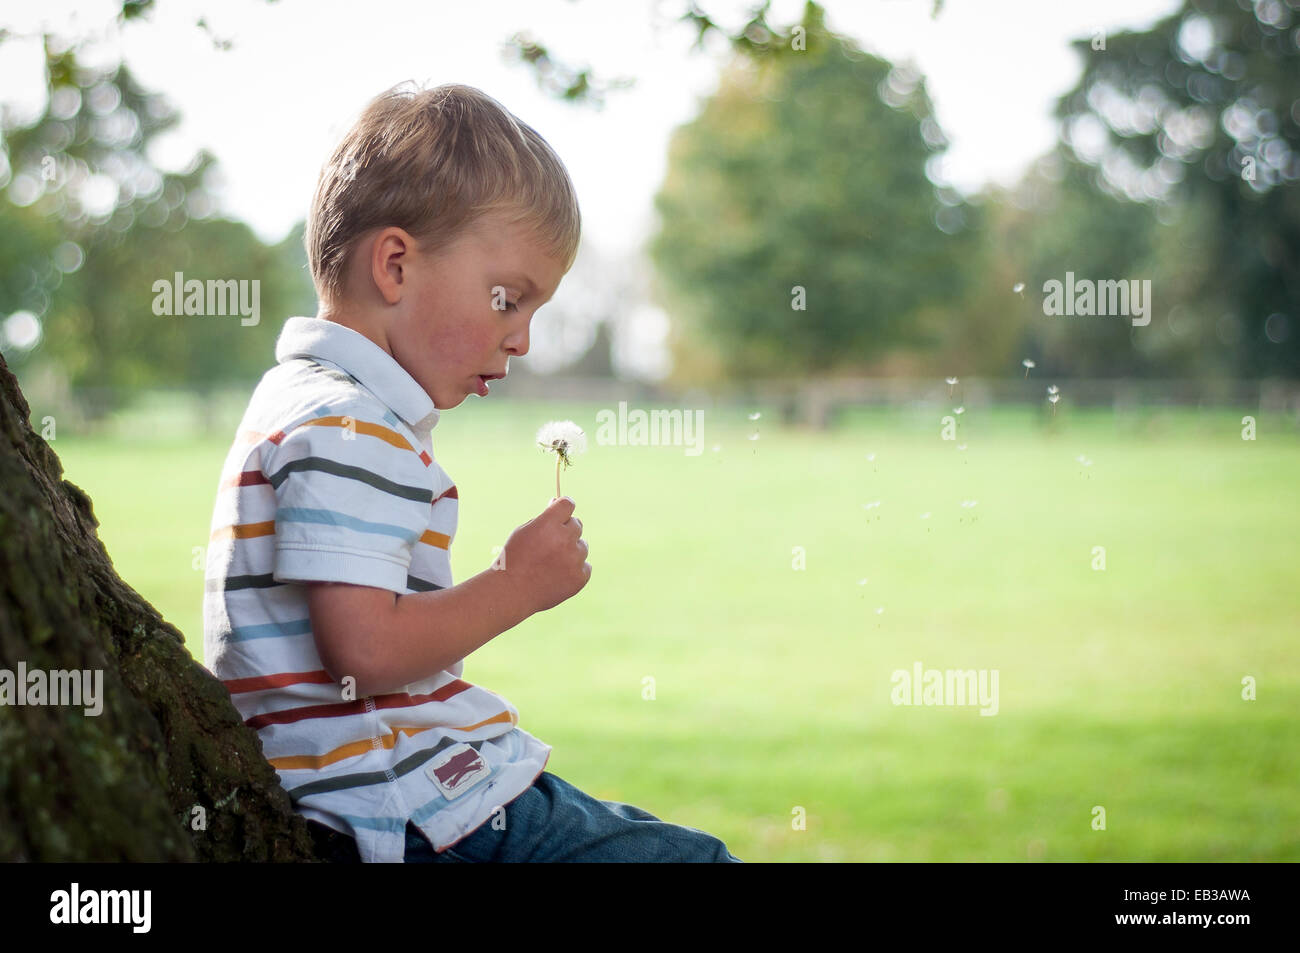 Boy leaning against tree blowing dandelion clock - Stock Image